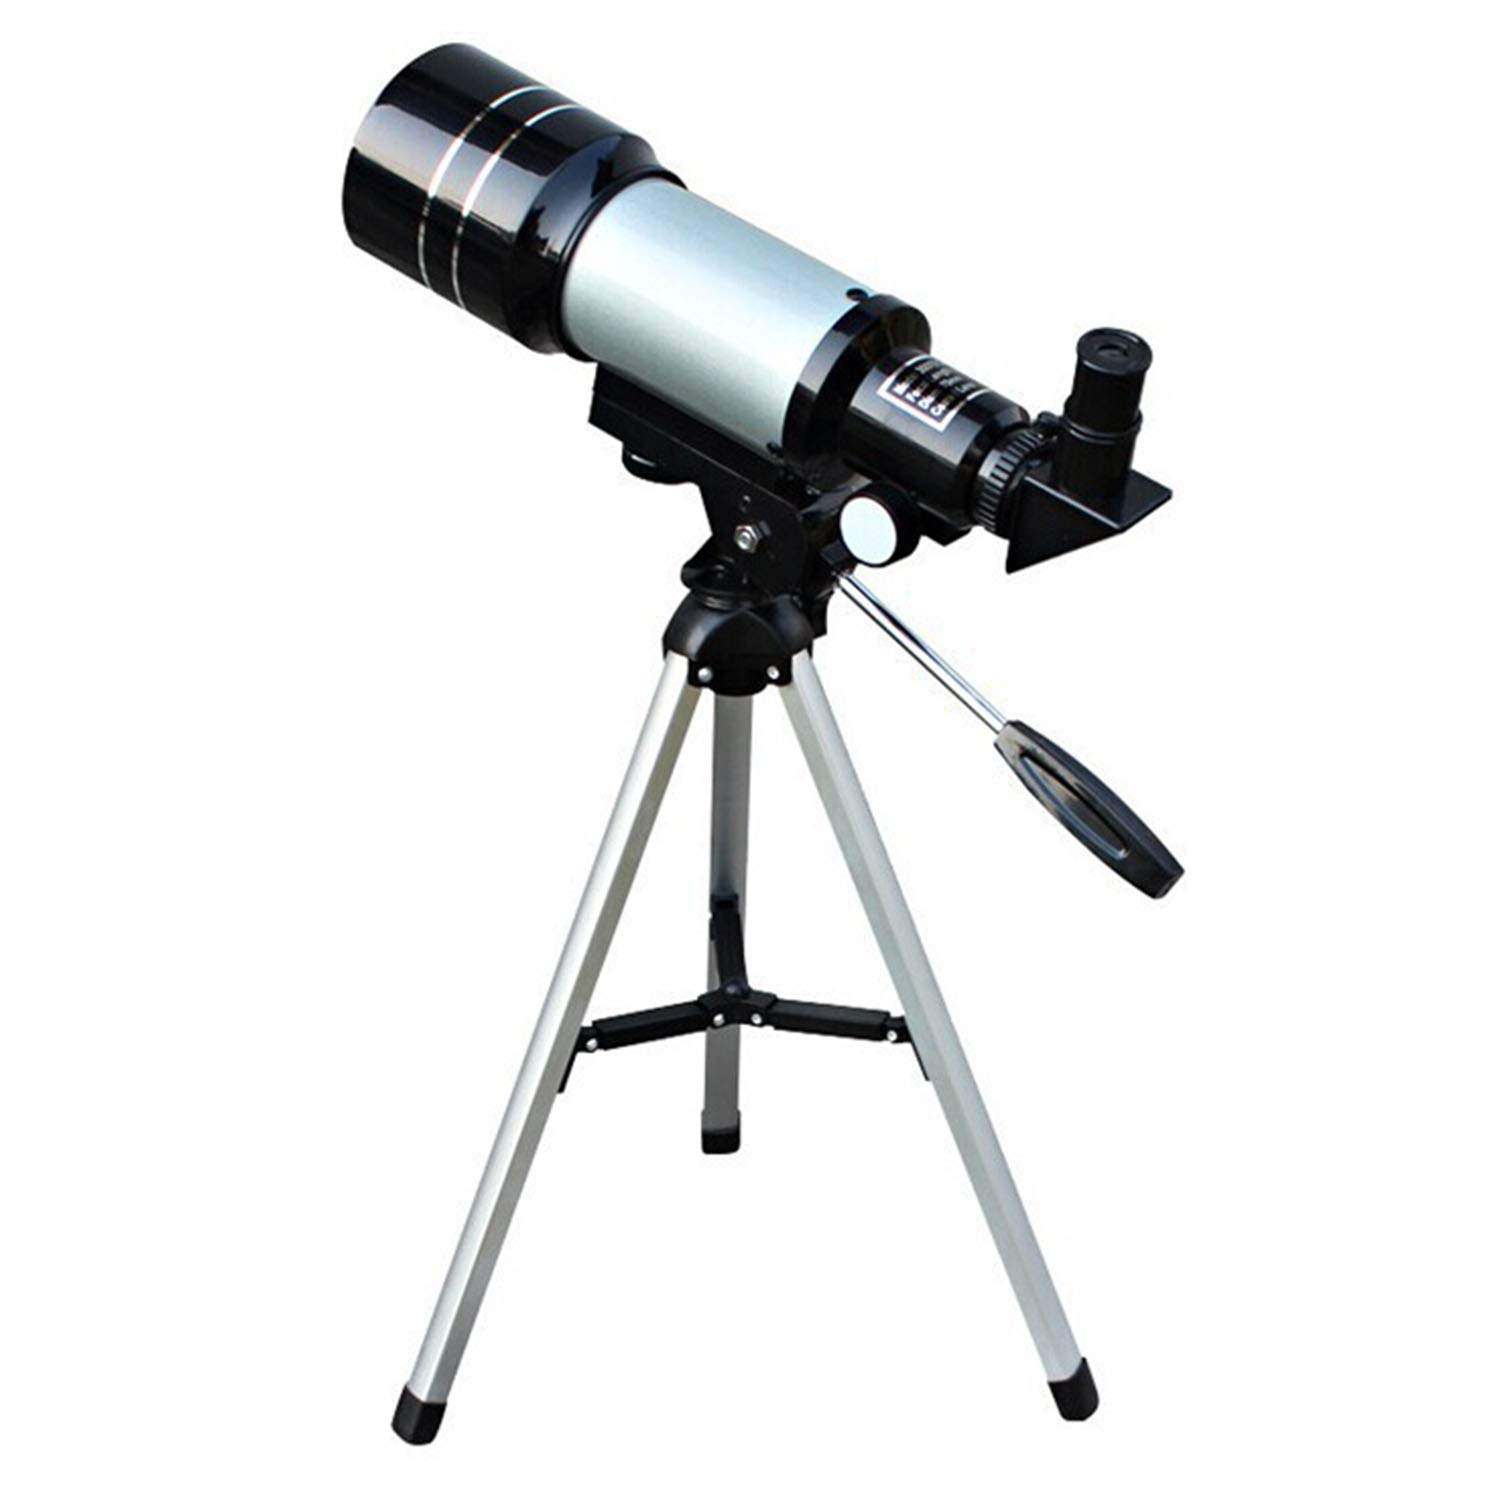 YAMADIE Children's Professional Astronomical Telescope, Single Tube, with A Tripod Student Gift Maximum Magnification 150 Times by YAMADIE